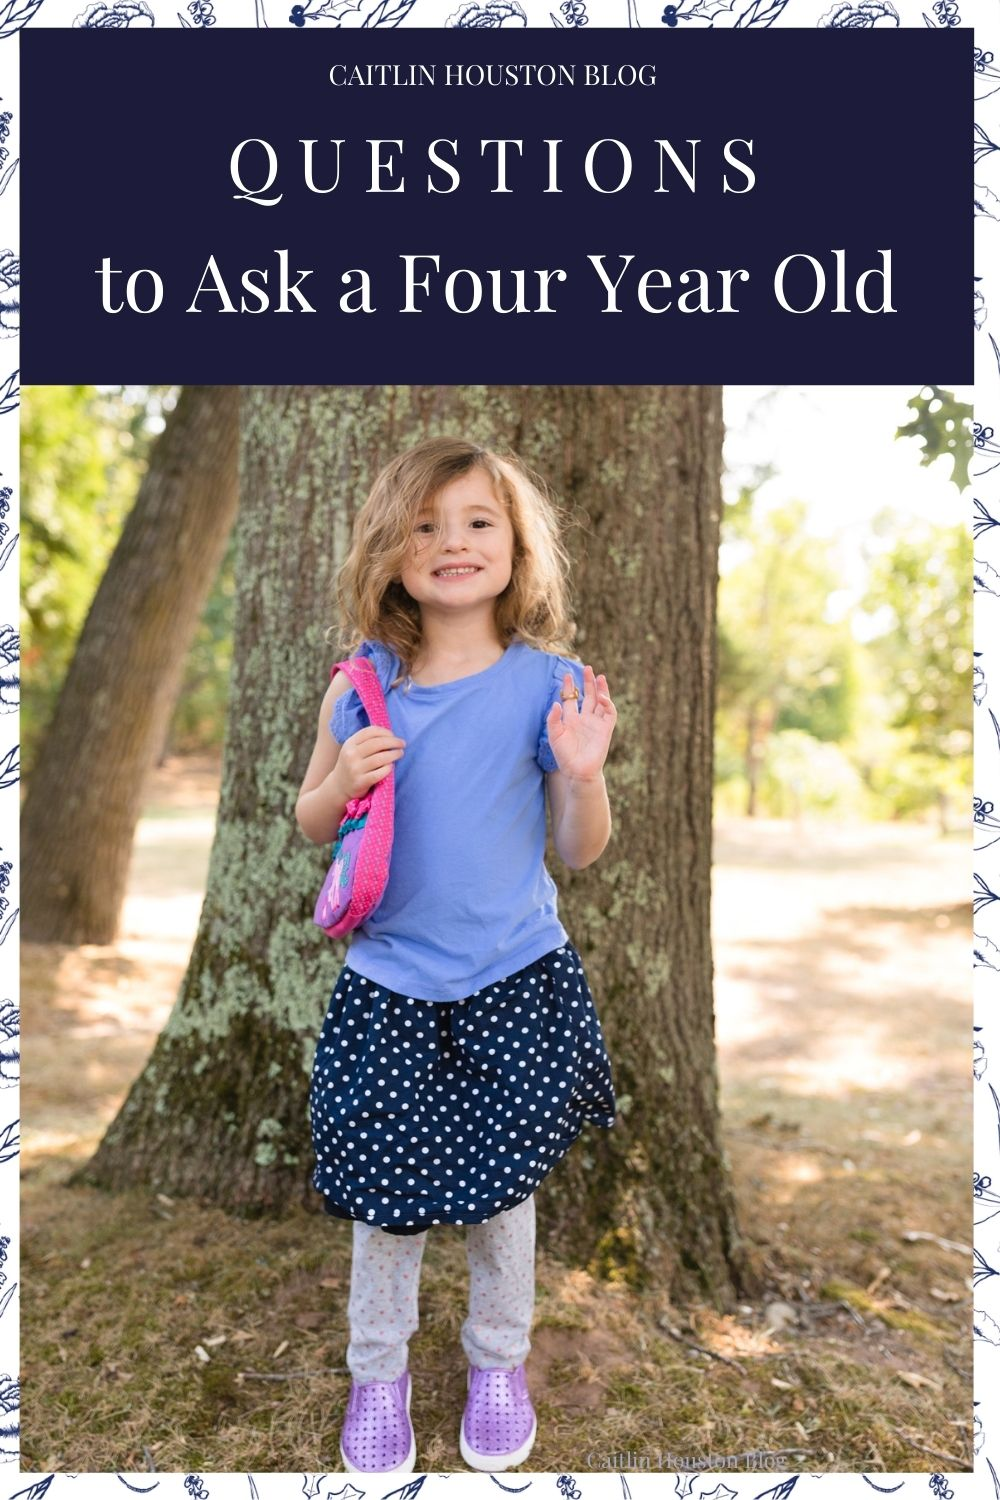 Questions to Ask a Four Year Old on their birthday about life, growing up, favorite things, and what they don't like